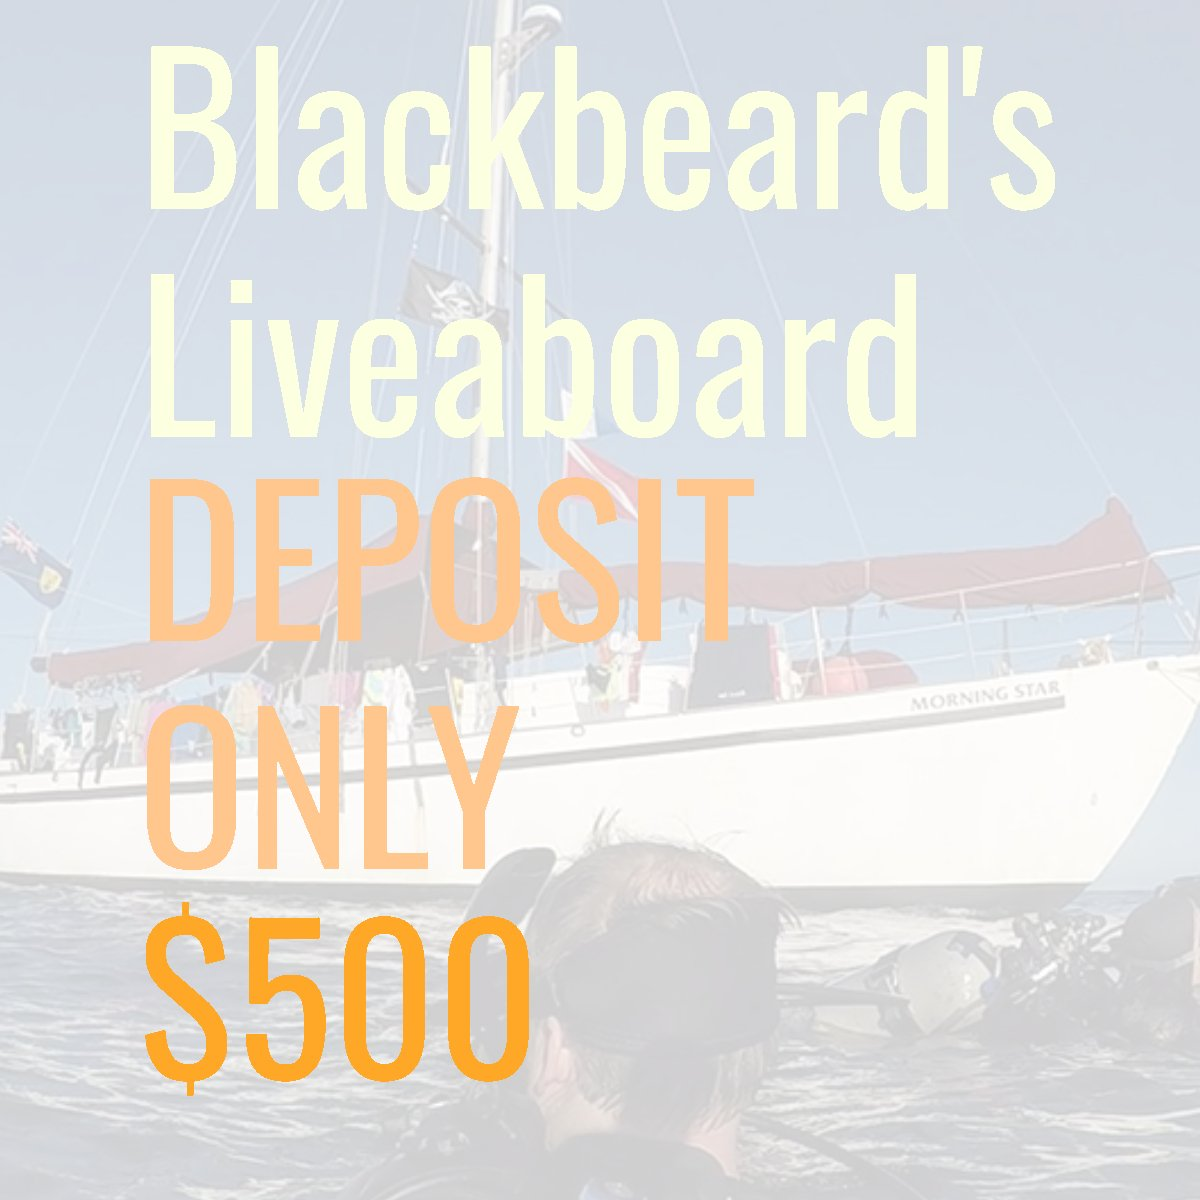 All Star Liveaboard Blackbeard Bahamas Jan 23-29 2021 Deposit ONLY